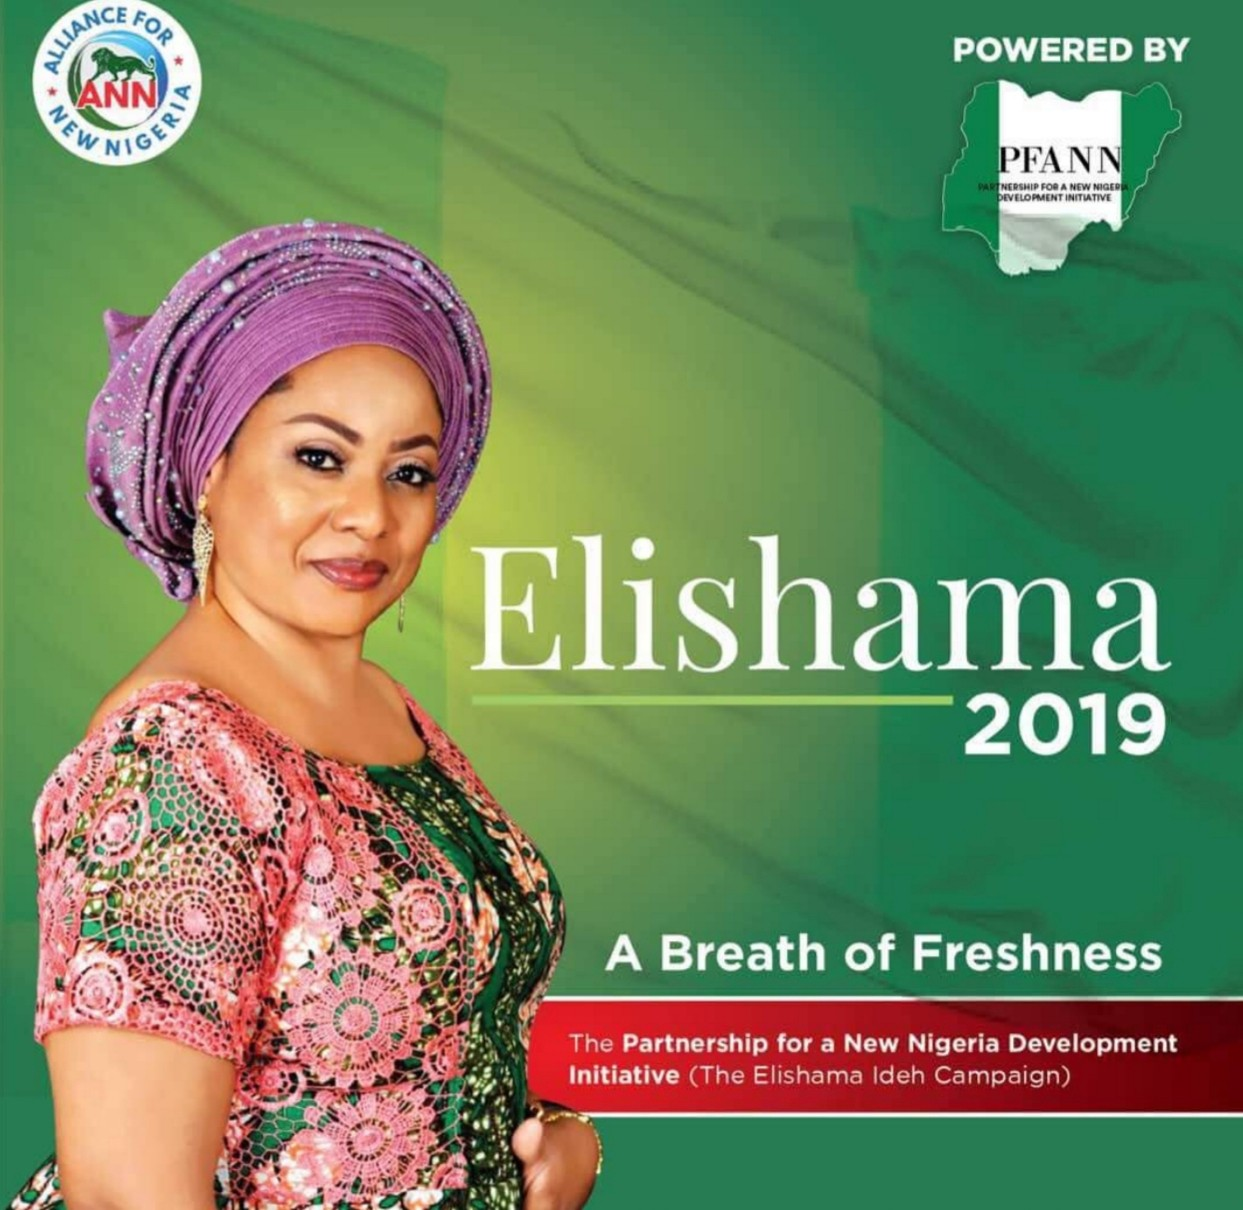 Dr. Elishama Rosemary Ideh becomes the second woman to join the race to run for President in 2019